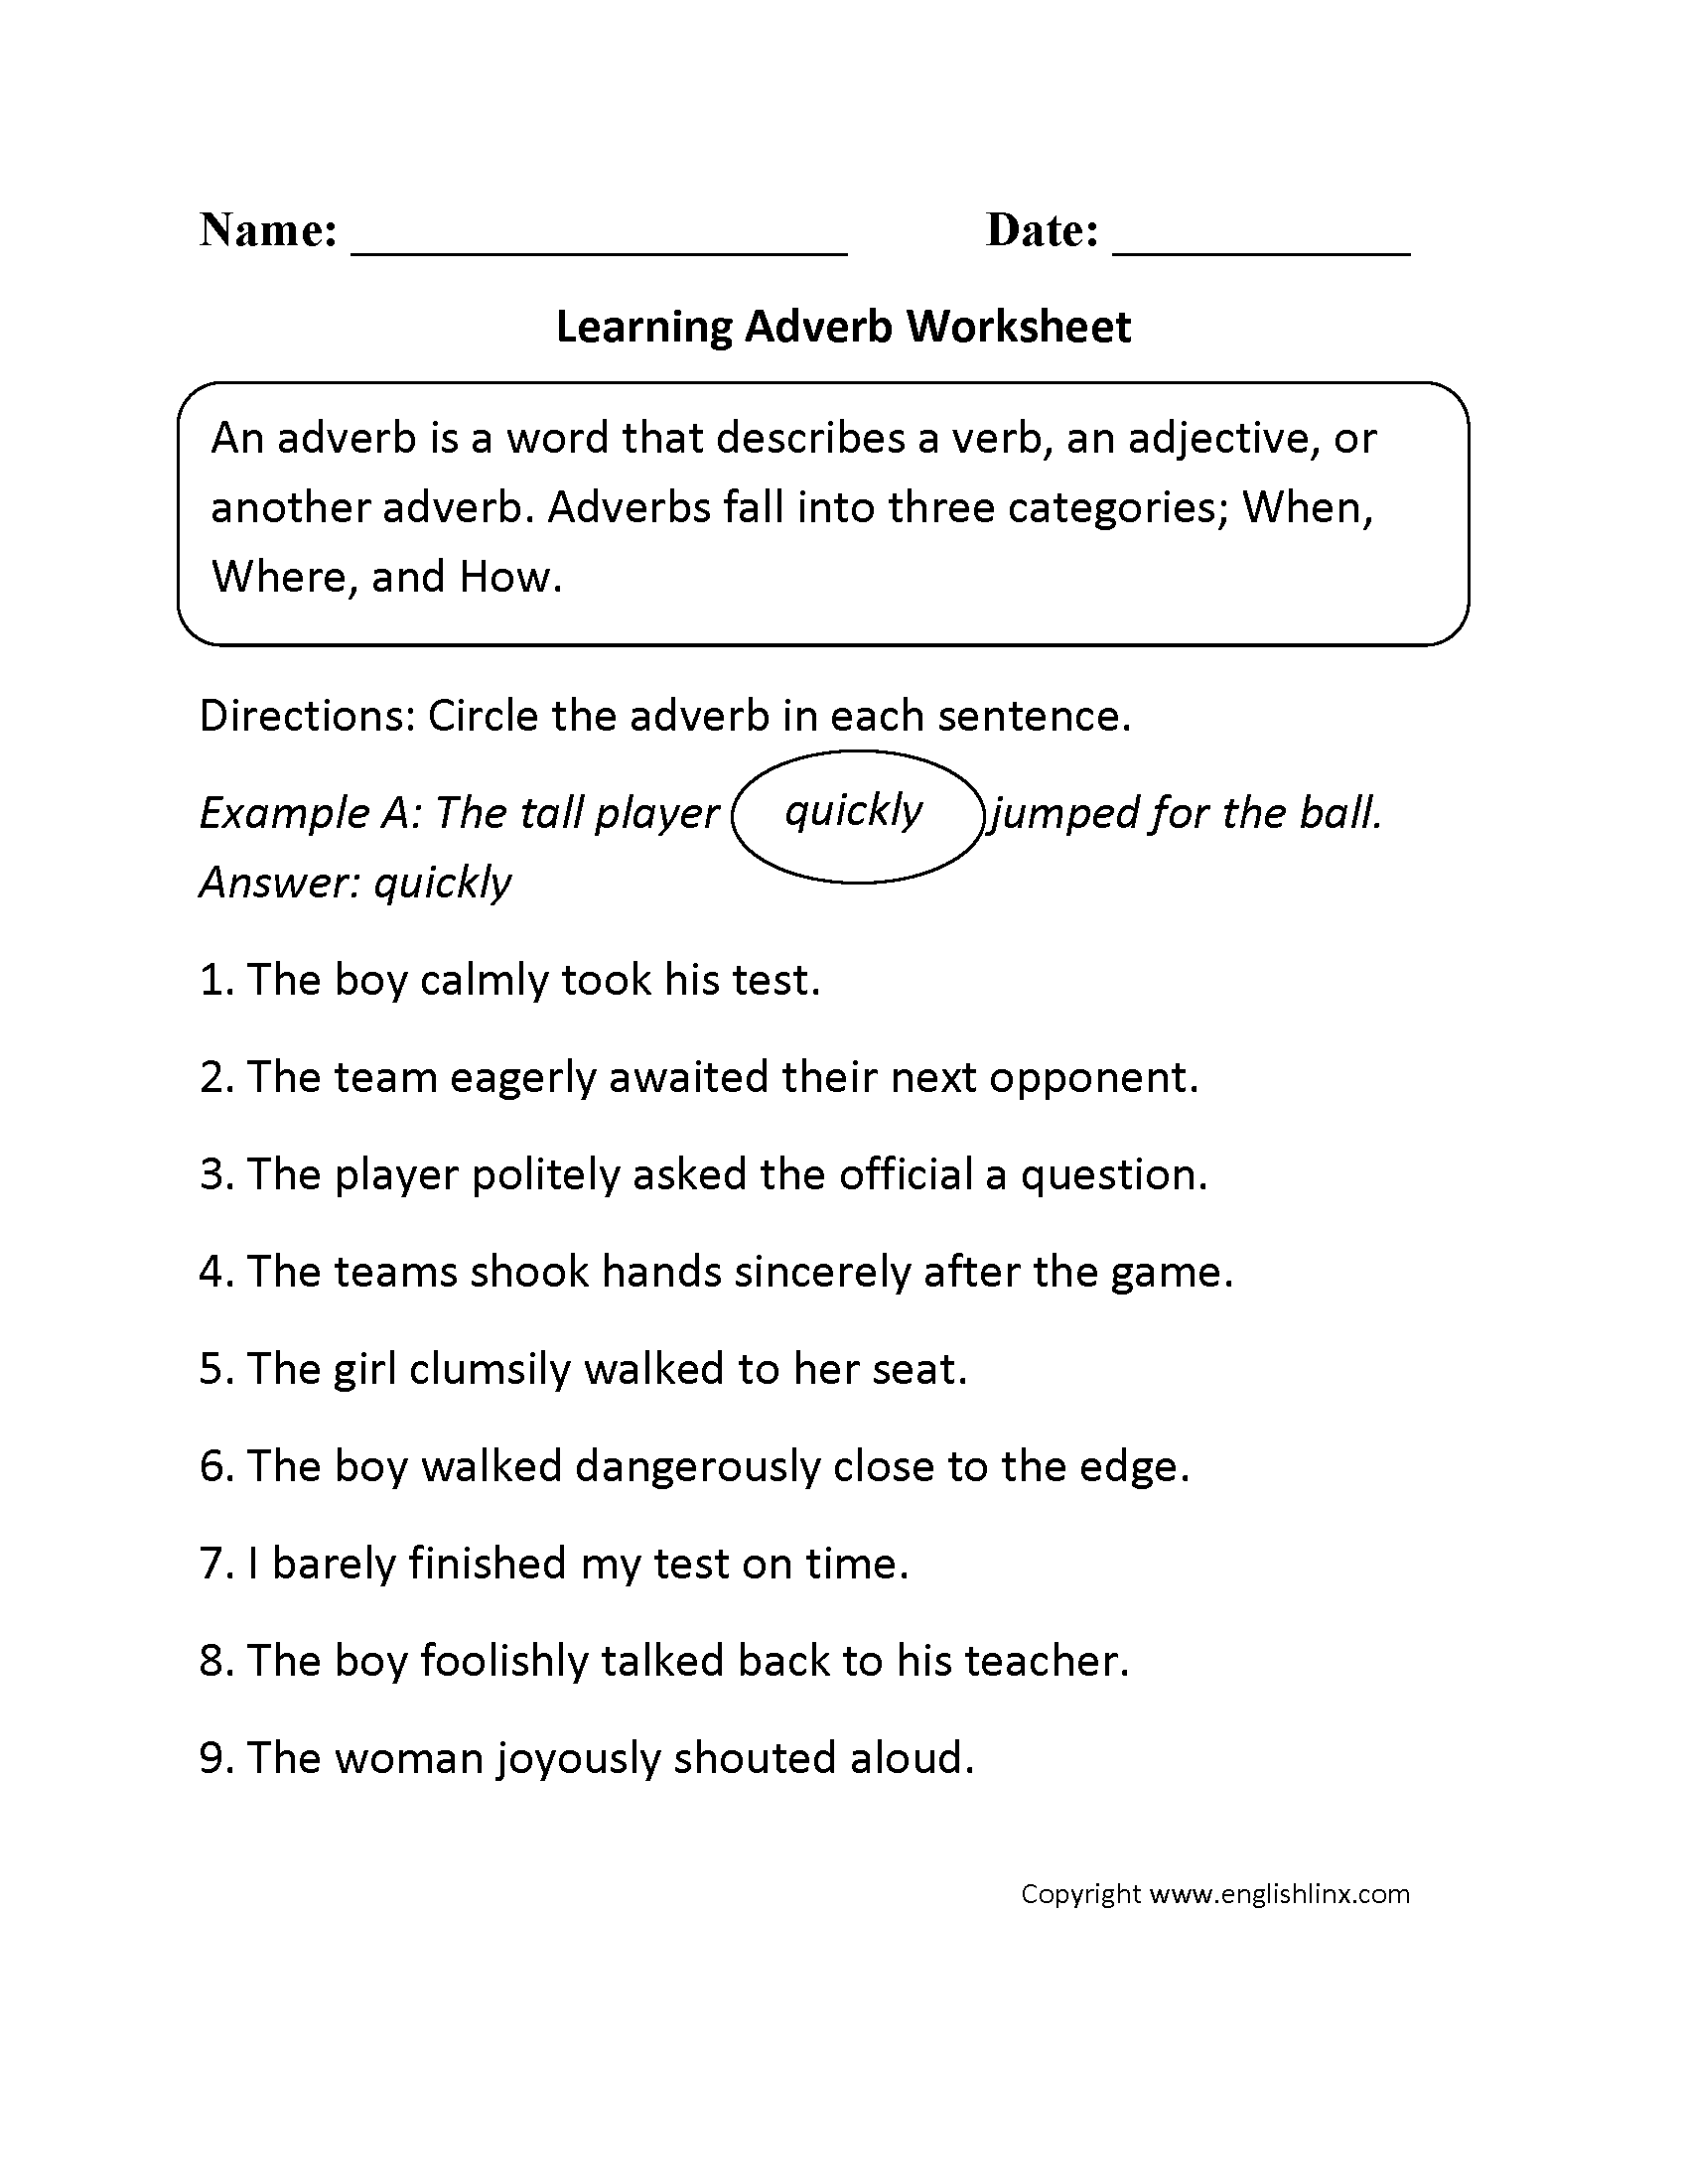 Worksheets Parts Of Speech Worksheets grammar worksheets parts of speech adverb worksheets